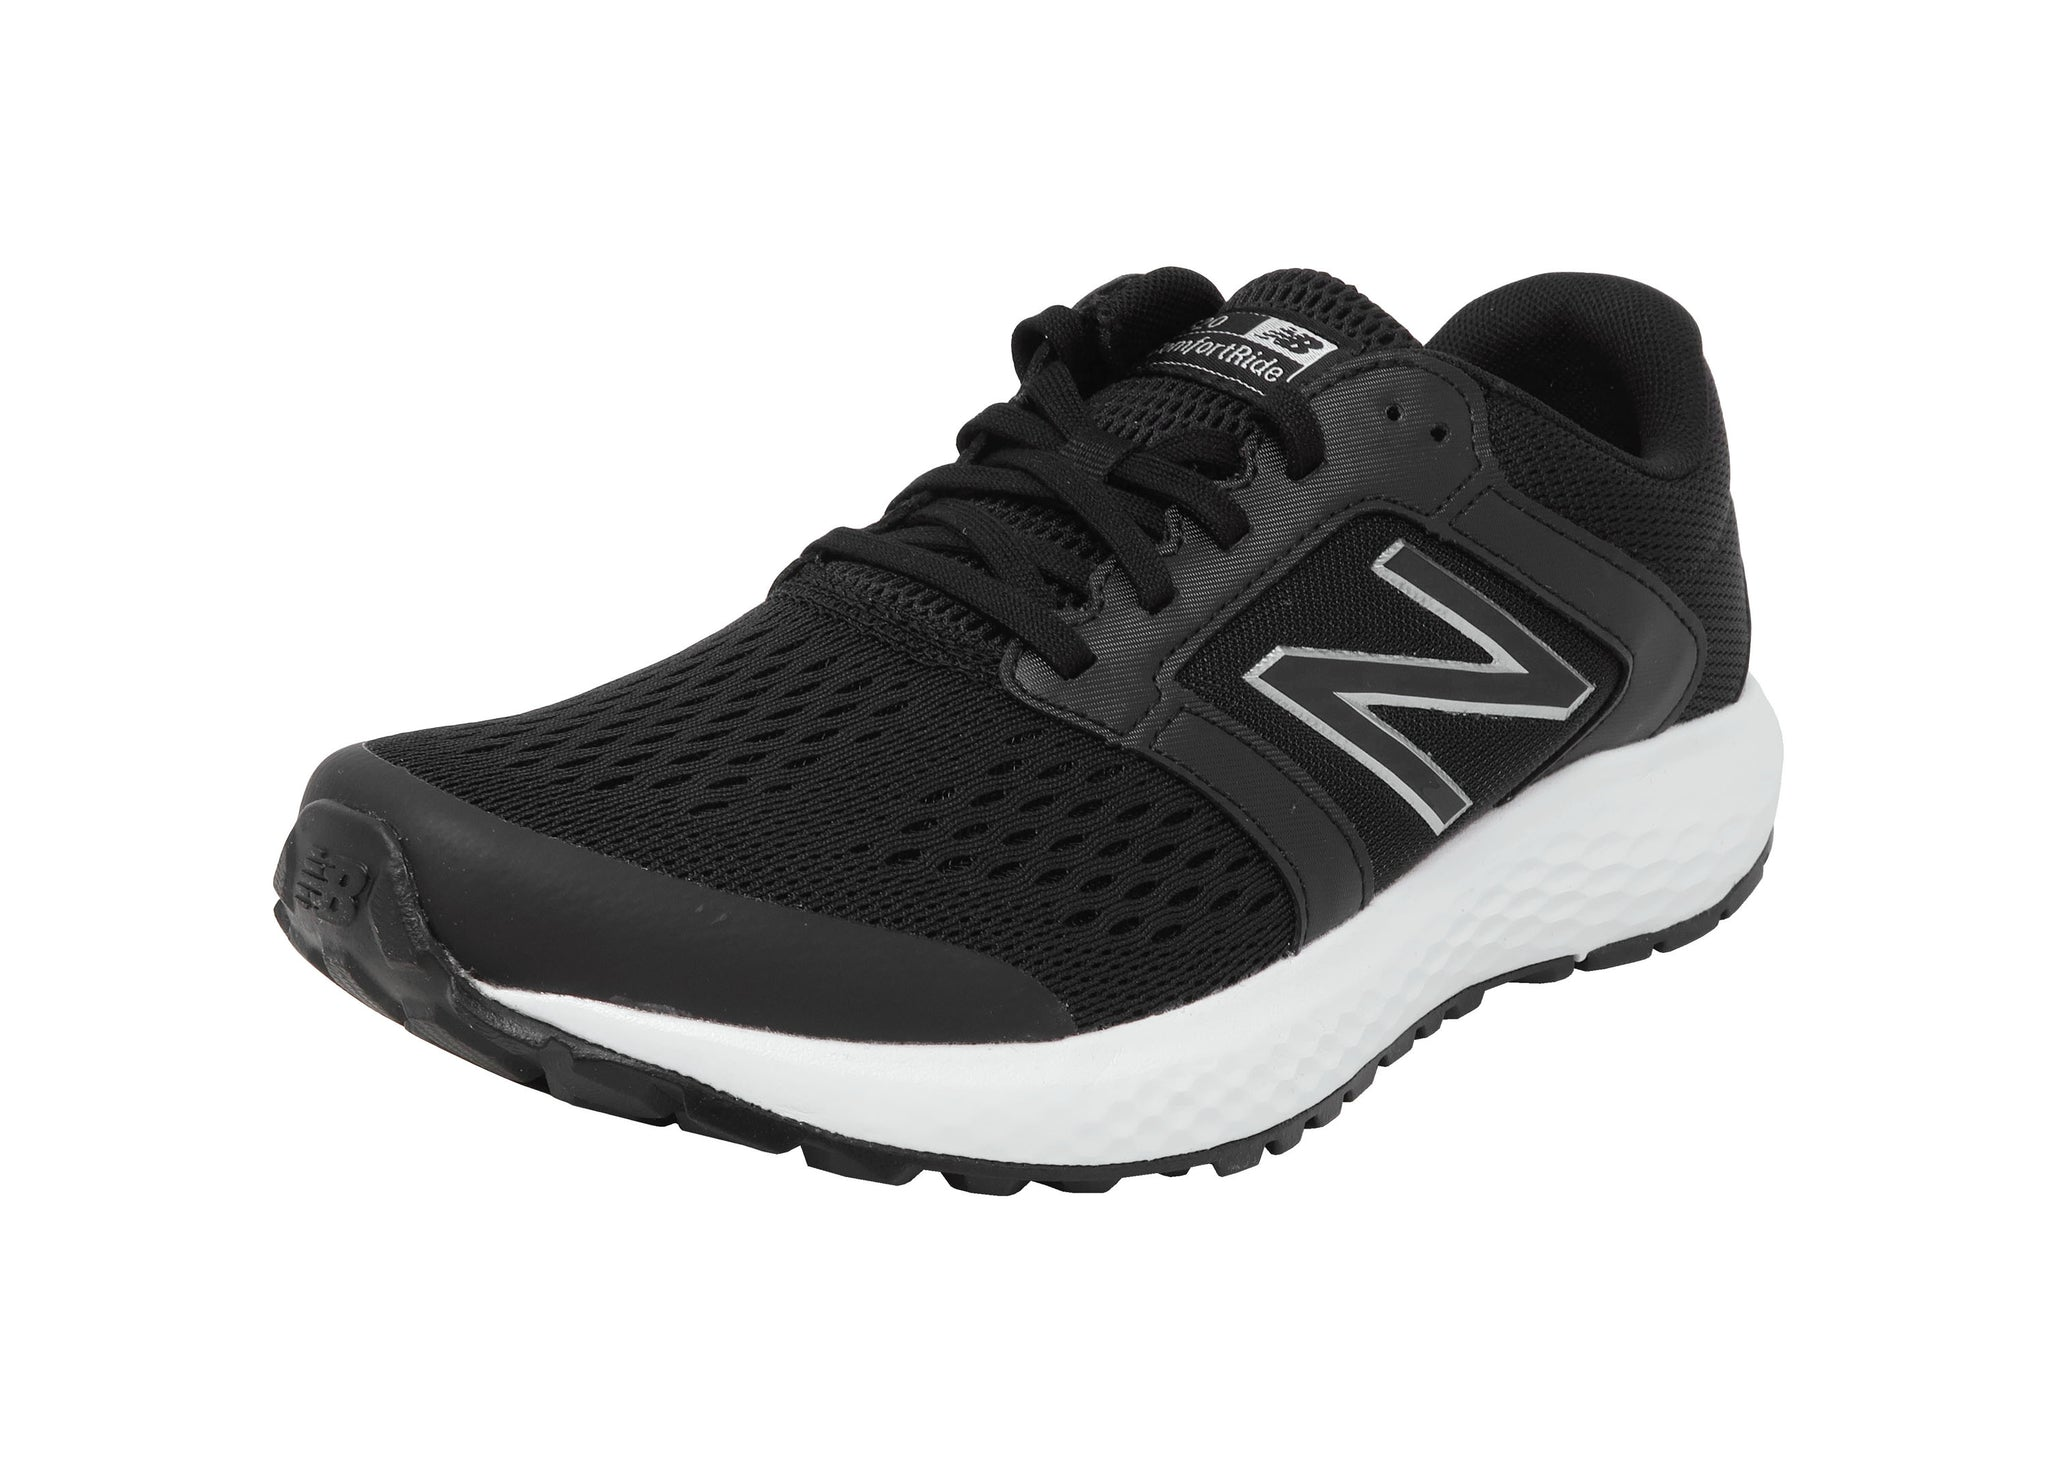 New Balance 520 Black/White Men's Shoes